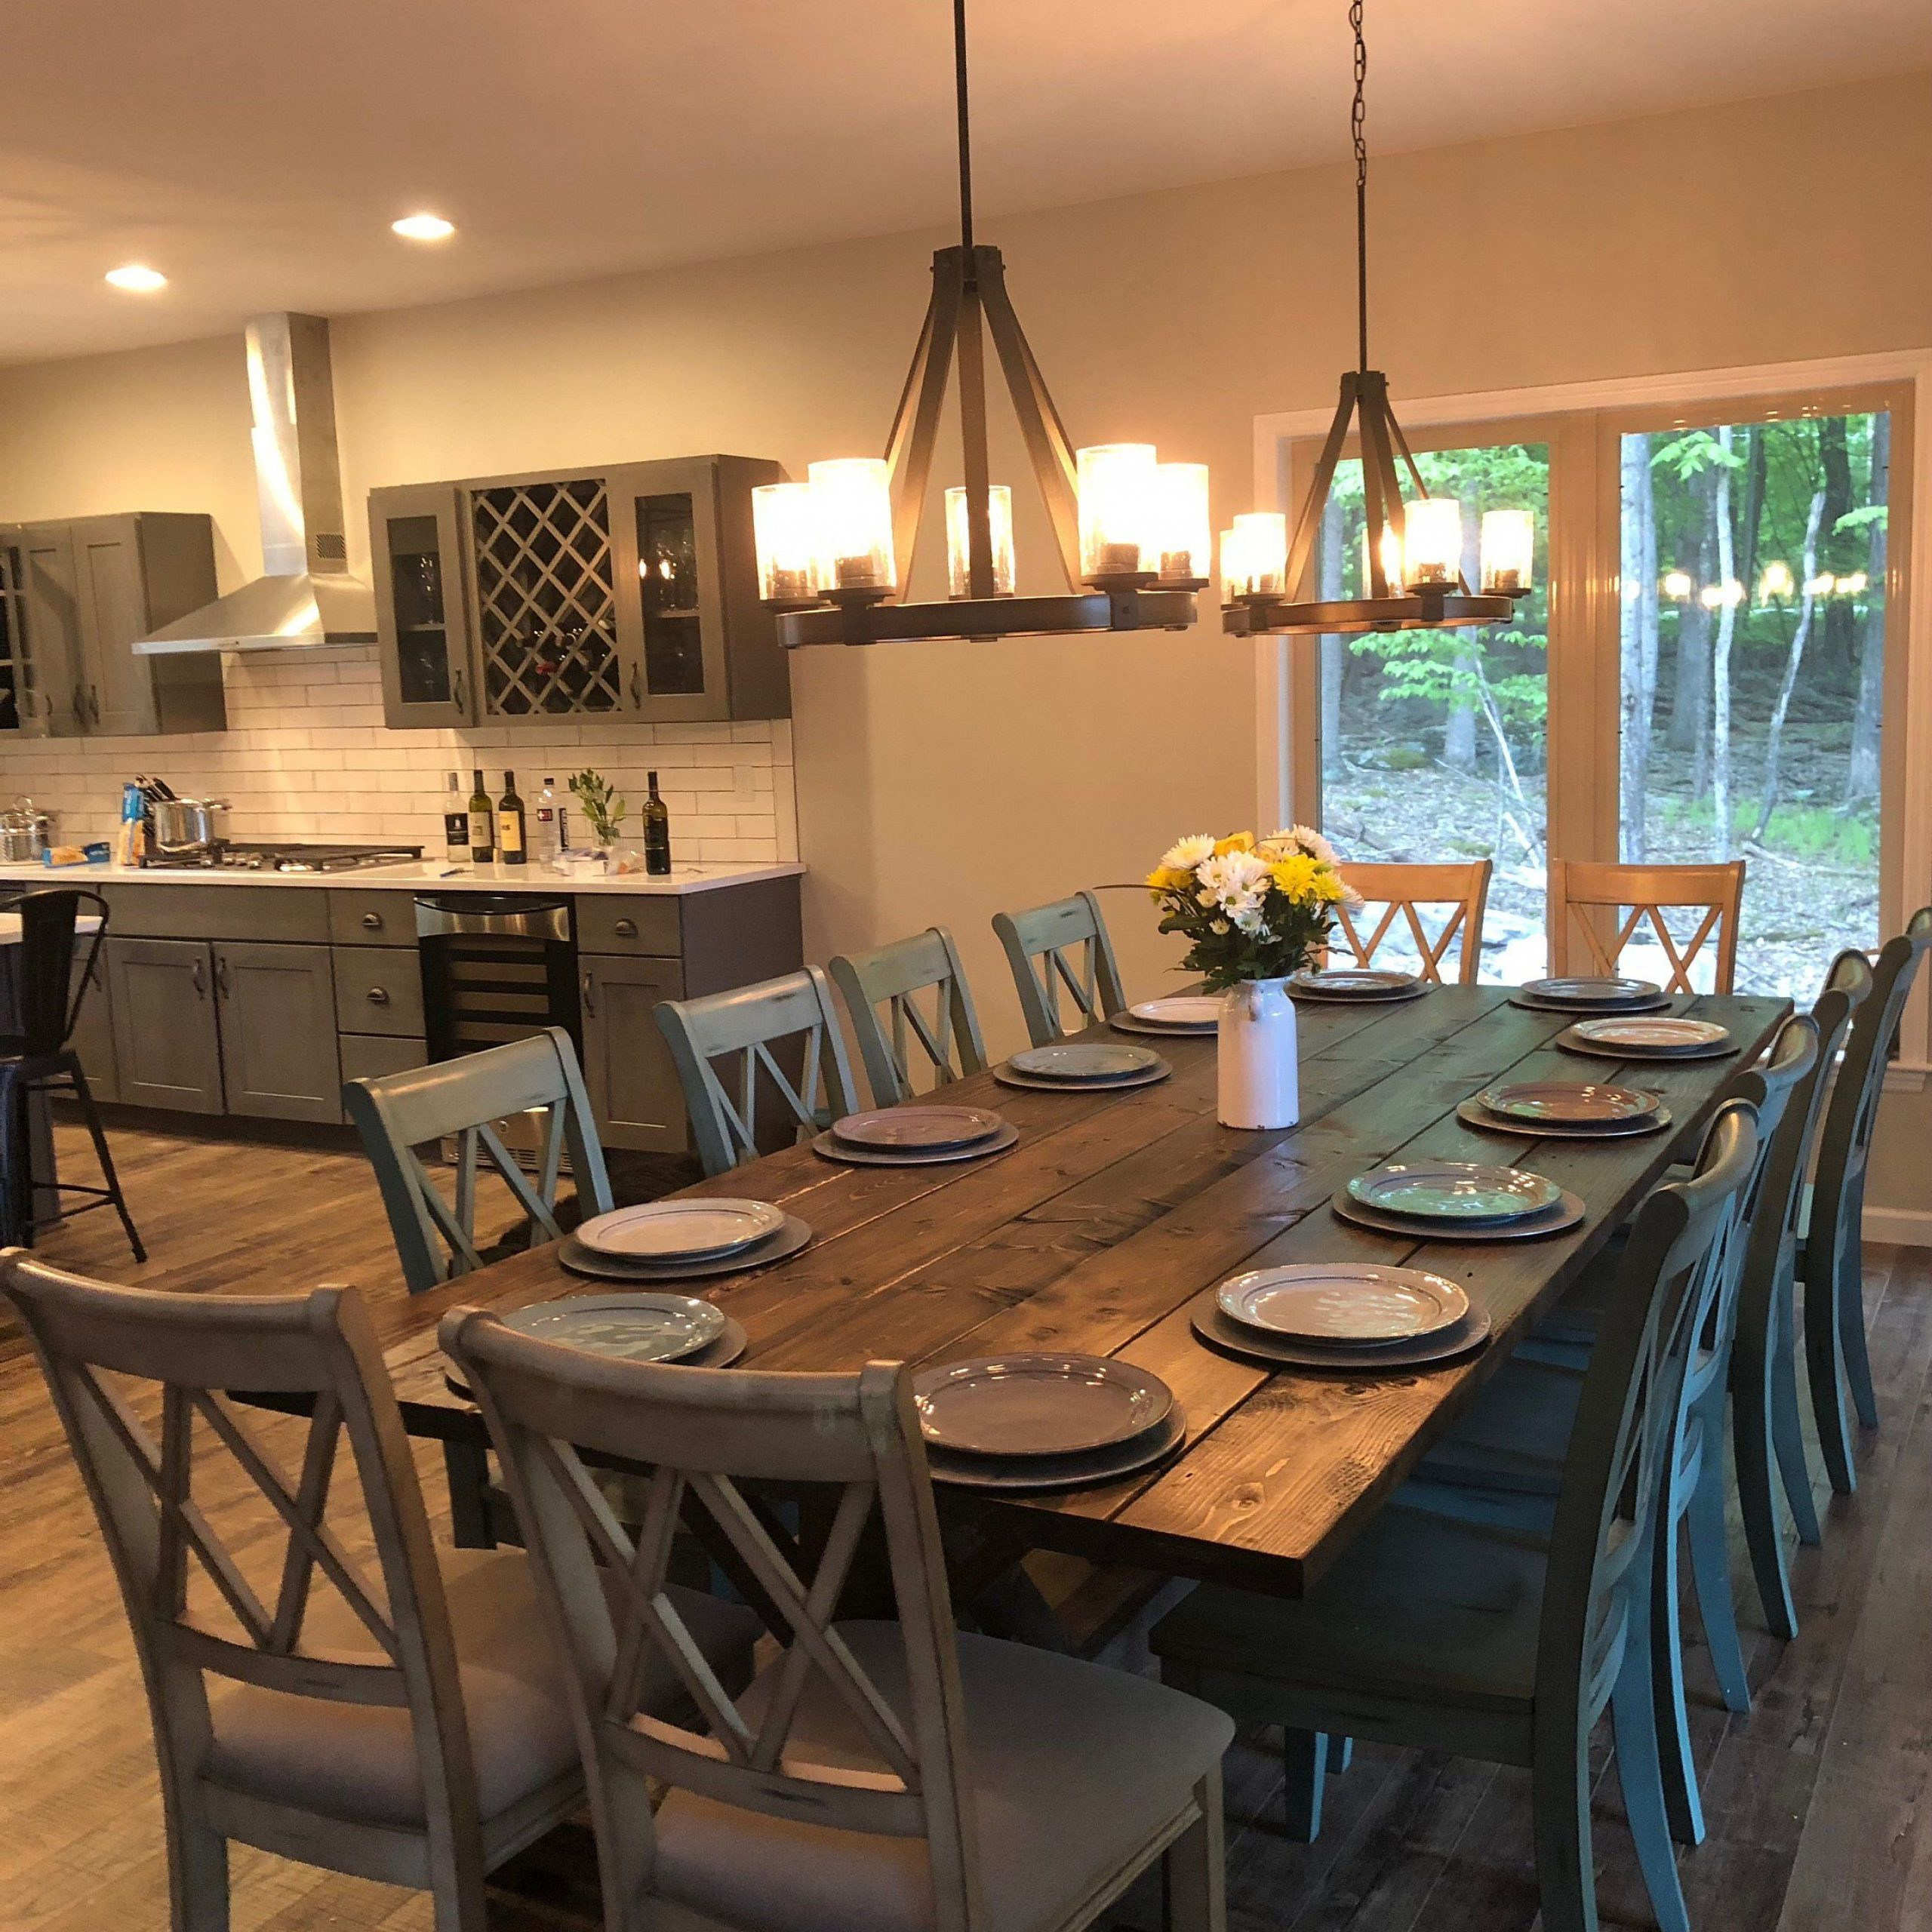 Widely Used Large Rustic Look Dining Tables Intended For Large Farmhouse Table, Rustic Farm Table, Farmhouse Dining (View 8 of 25)